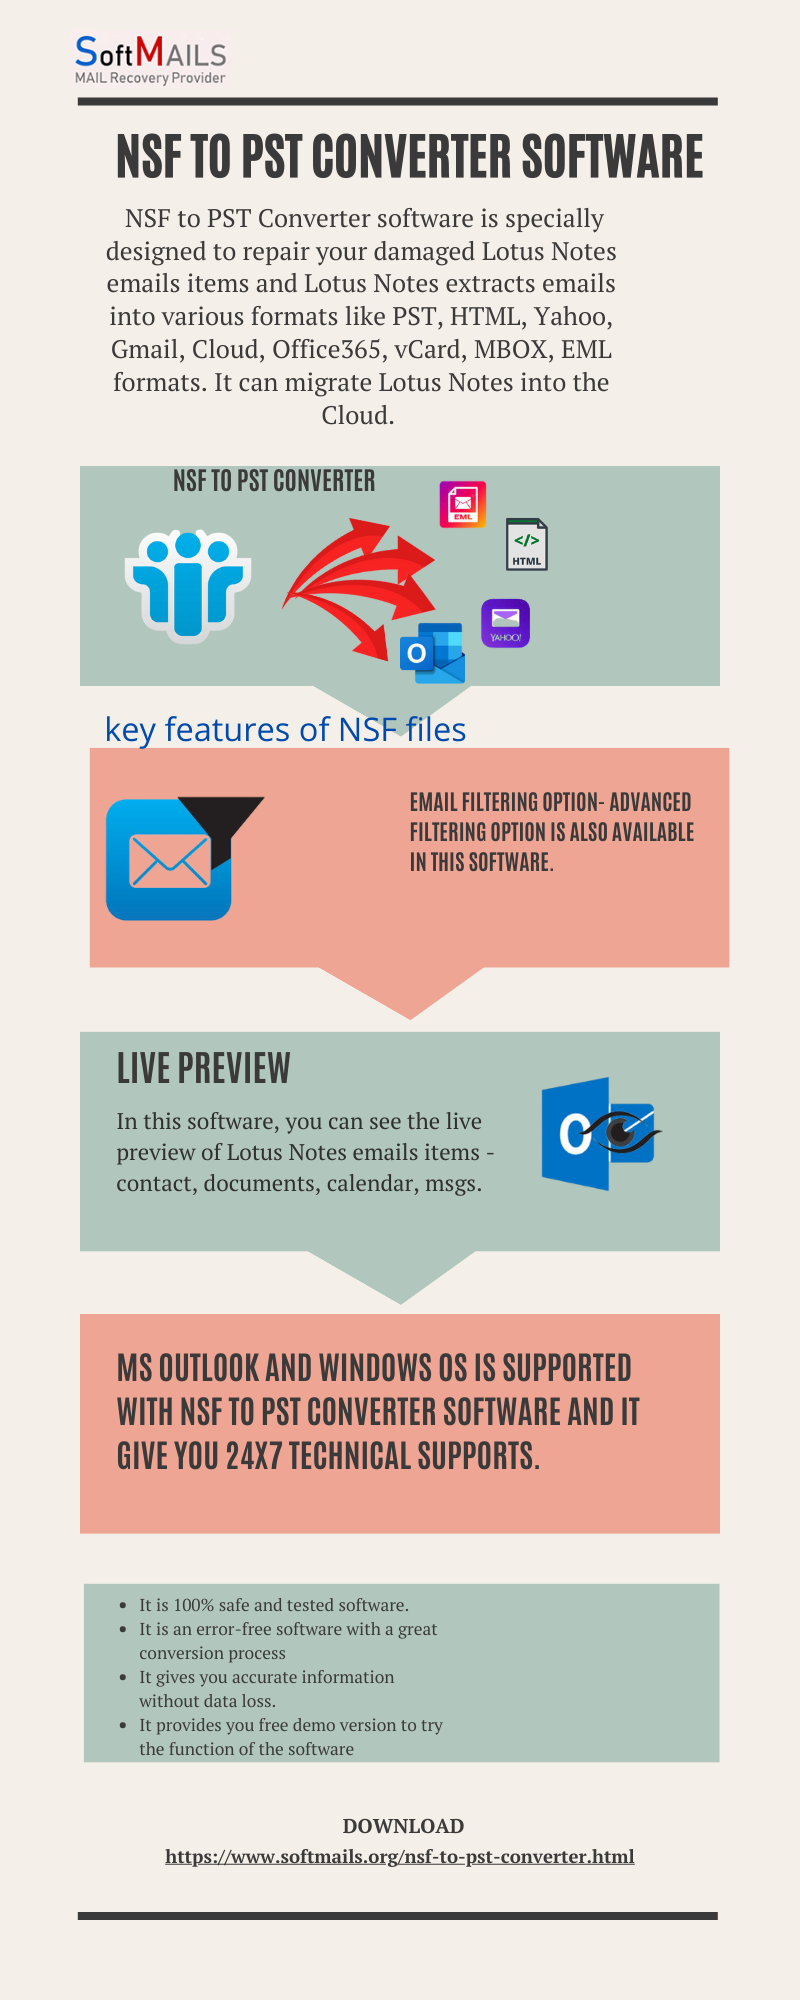 How to migrate lotus notes to office 365?